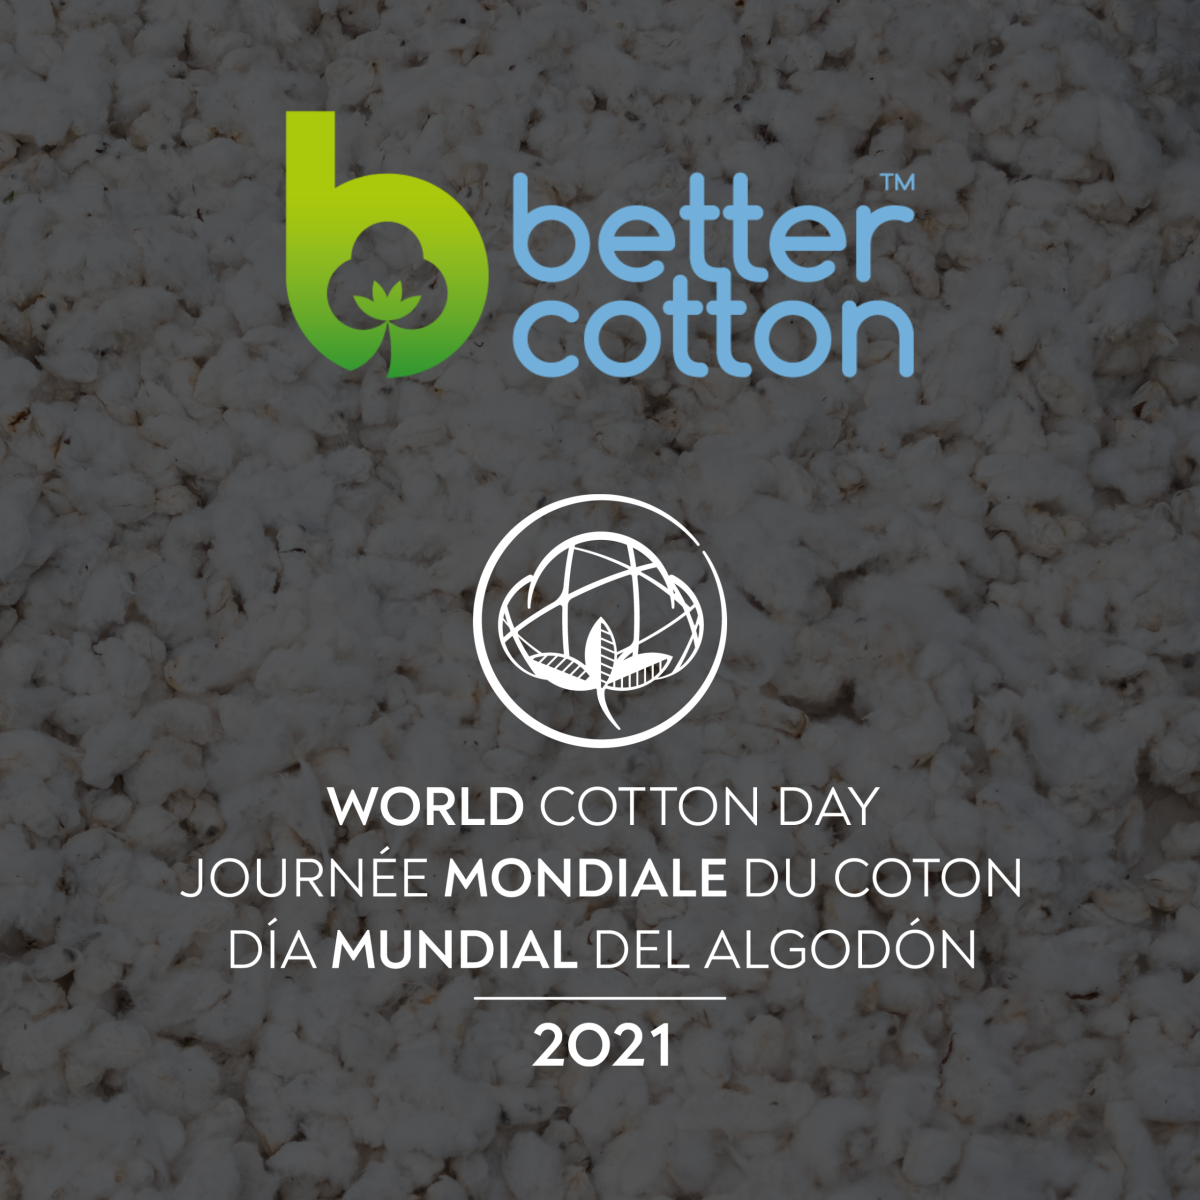 World Cotton Day and Better Cotton logos